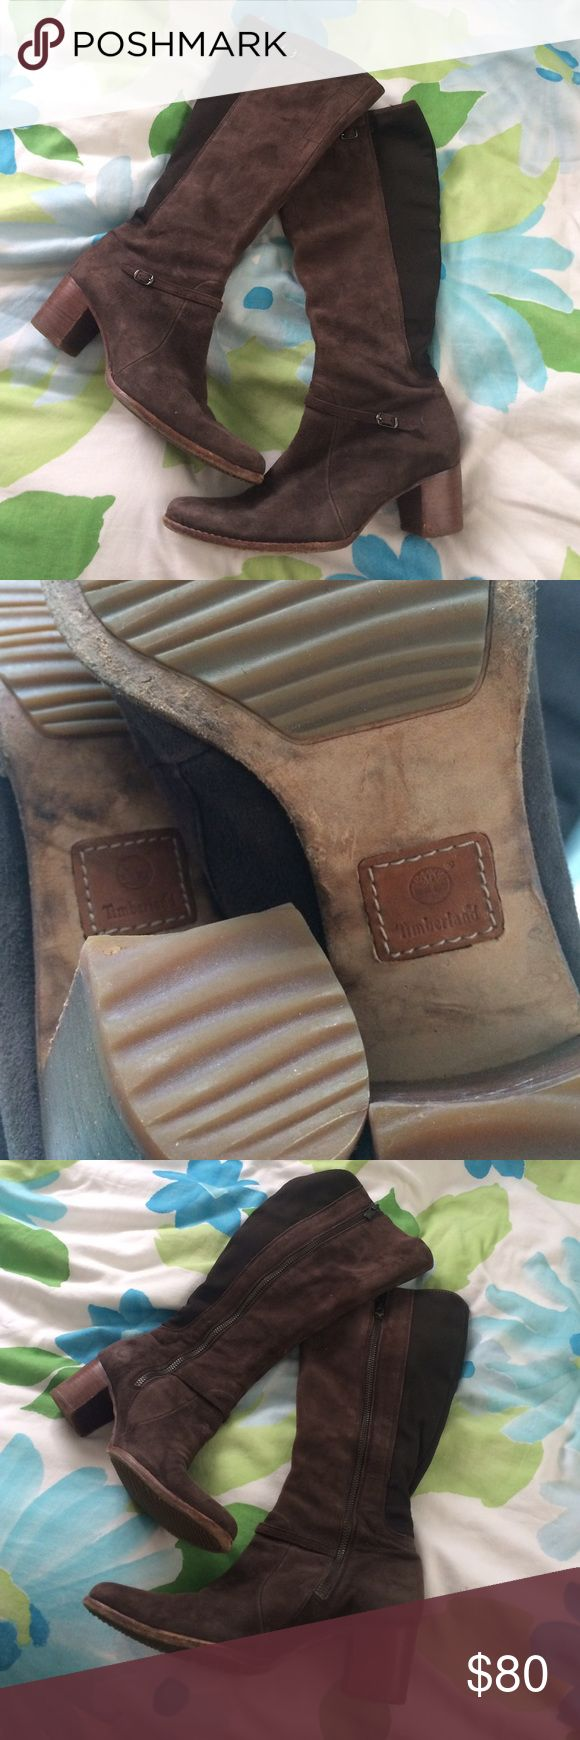 """⚡️FLASH SALE Timberland Suede Boots⚡️ These are women's riding boots from Timberland. They are genuine leather and manmade upper leather and manmade lining leather and manmade outsole. Made in China. Approximately 4"""" heel. Rubber treading on the bottom. Approximately 16"""" shaft height. Approximately 6"""" across flat. Easy stretching for wider calves 😘 Perfect for the fall season! 🍂🍁 Baby power placed inside to prevent sweating; no visible signs of wear from application. Left heel minor…"""